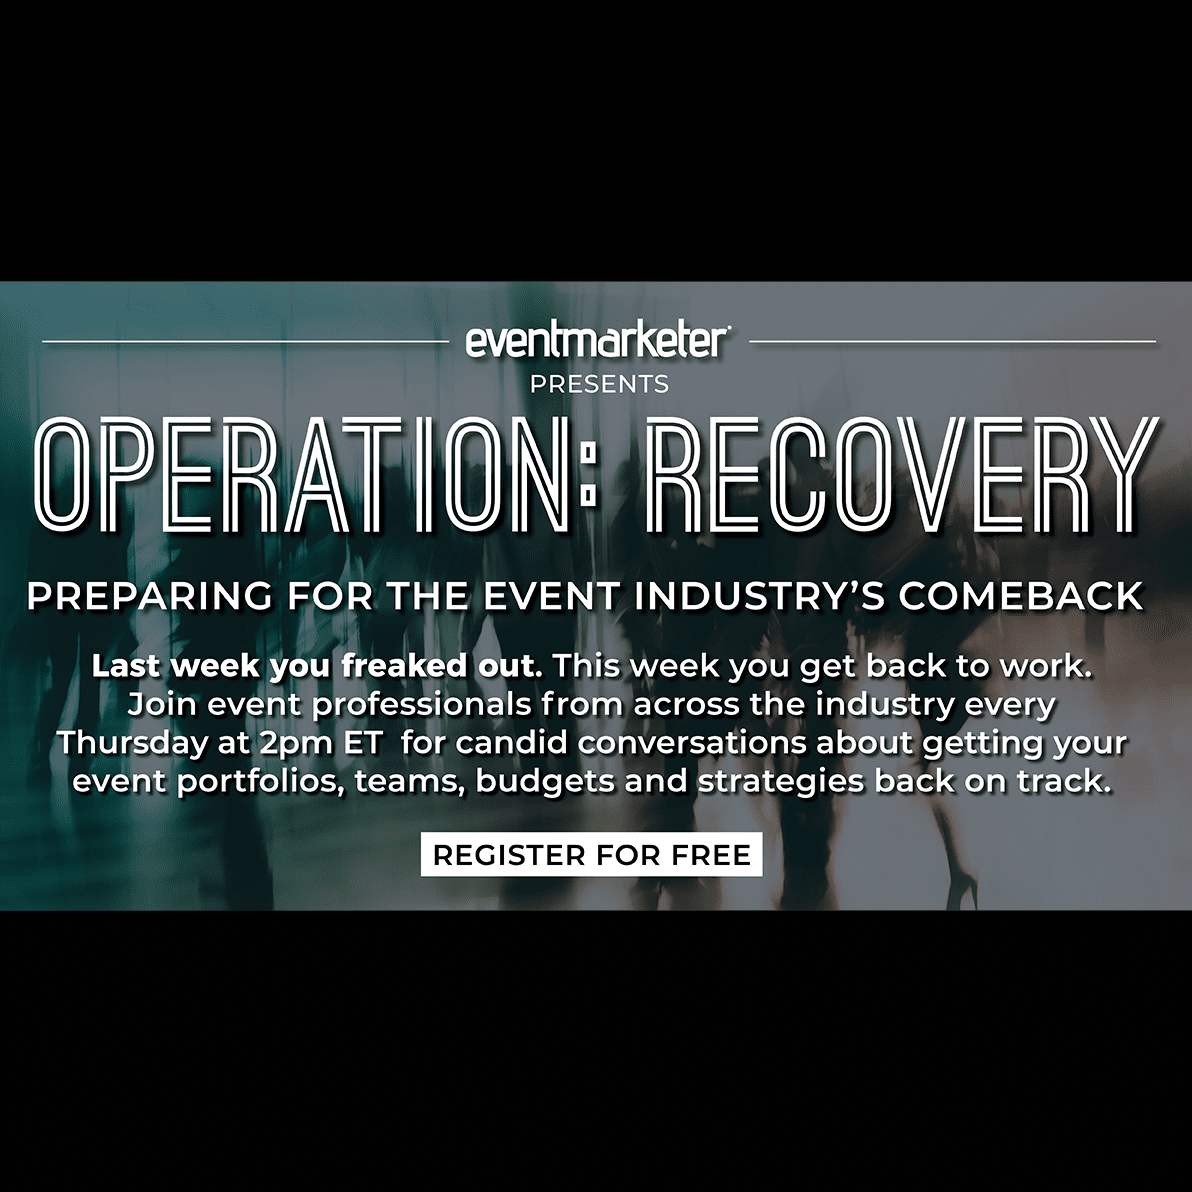 em-operation-recovery_1200x630